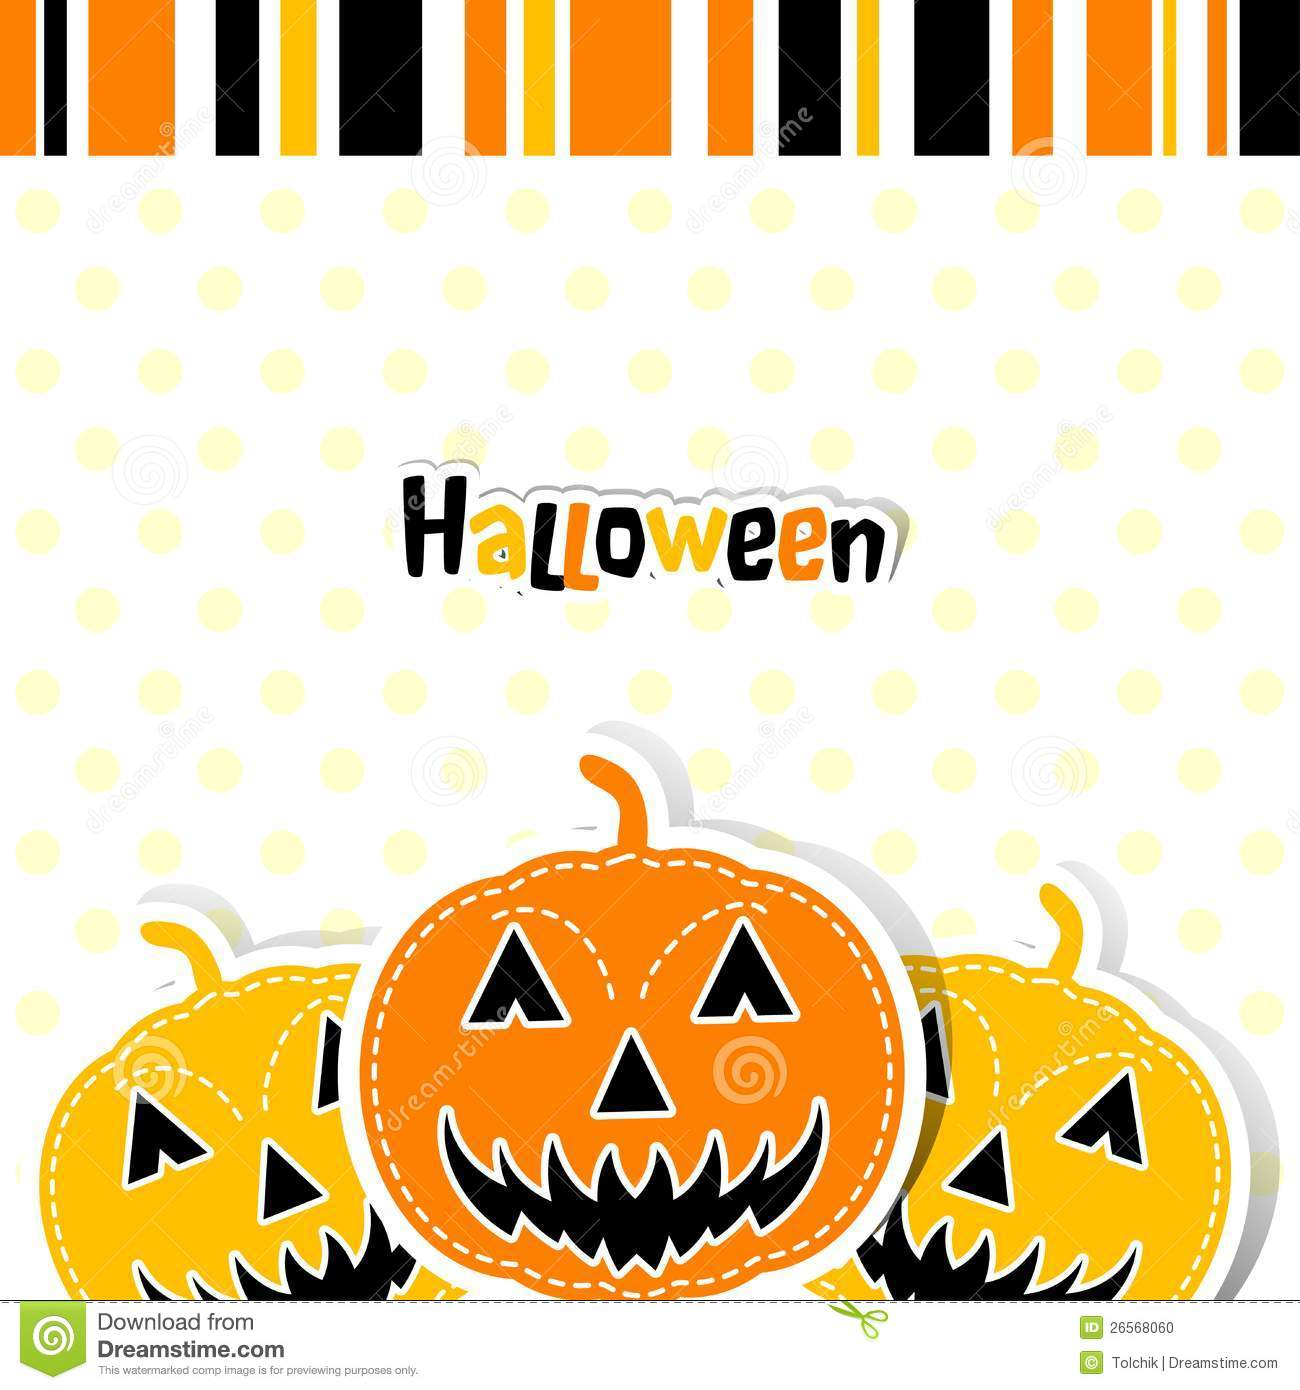 Template Halloween Greeting Card, Vector Stock Photo - Image: 26568060